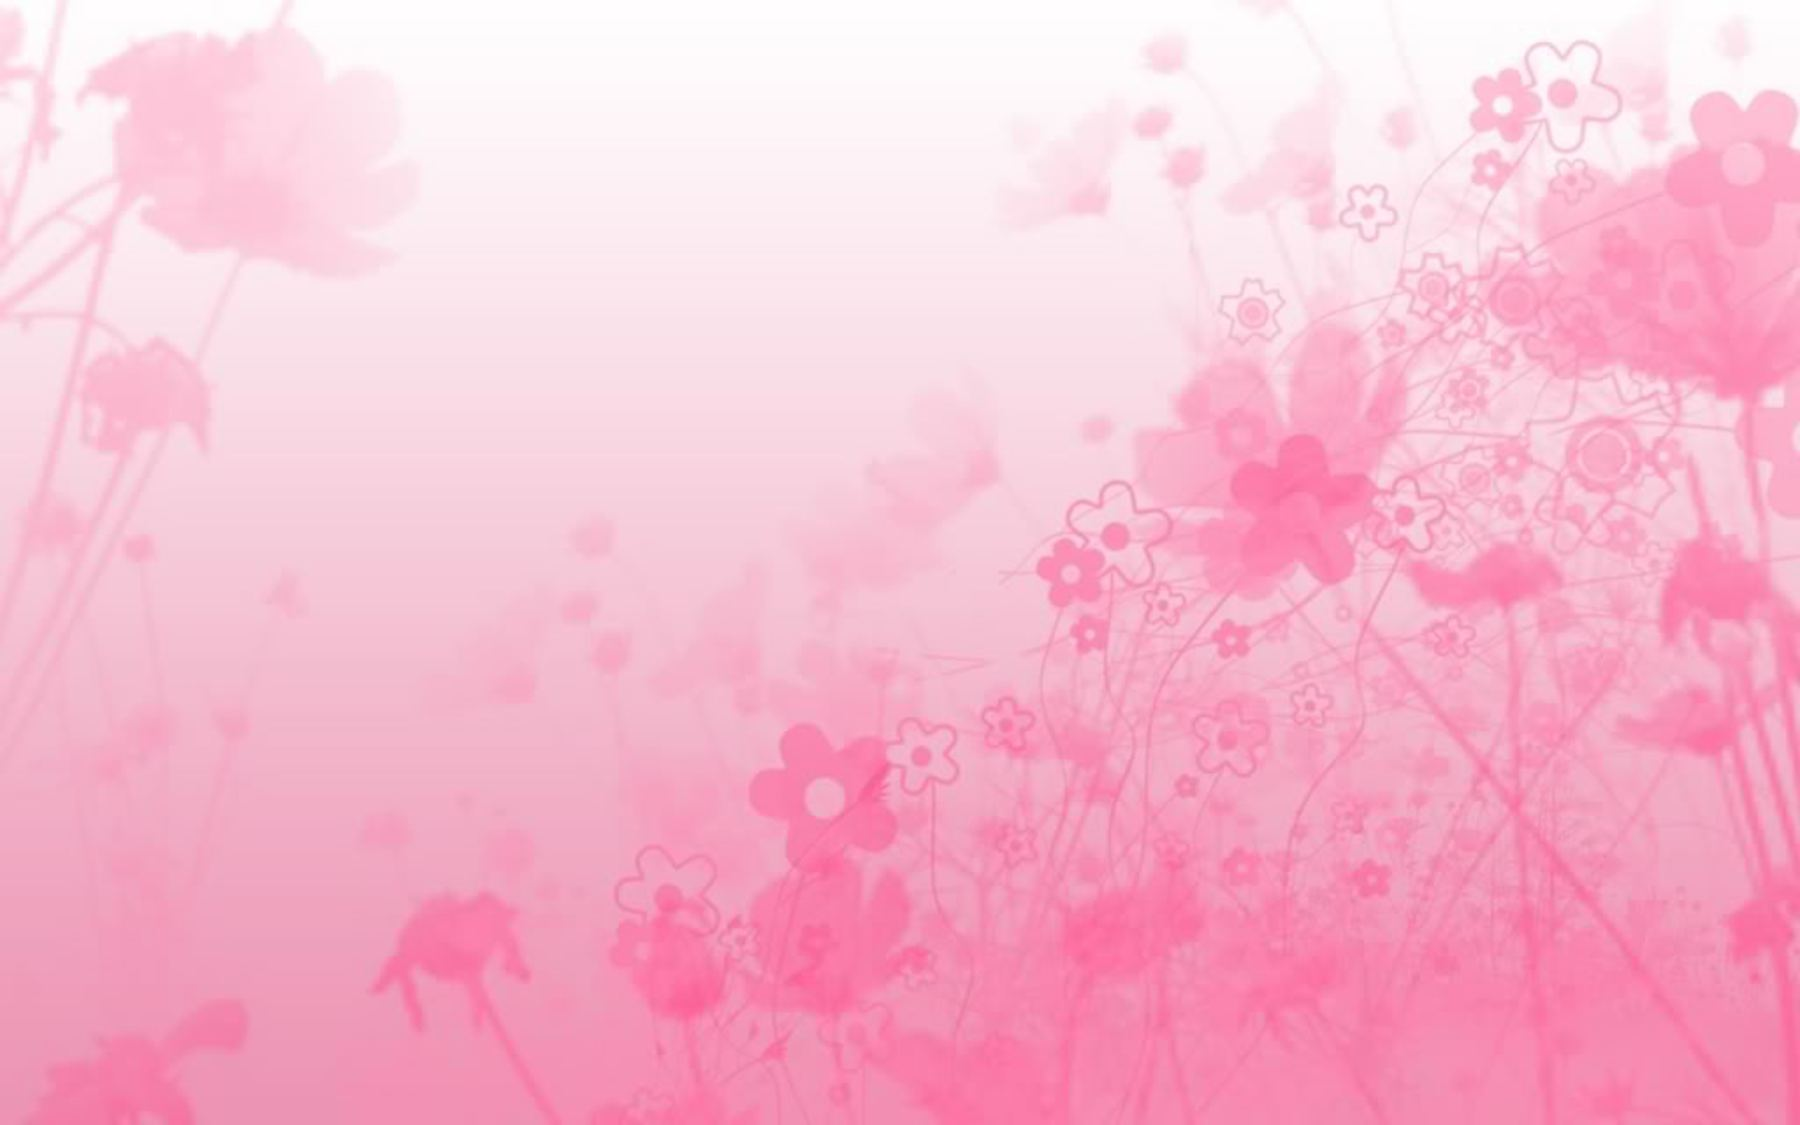 Abstract Flowers Backgrounds 7530 Hd Wallpapers in Flowers   Imagesci 1800x1125